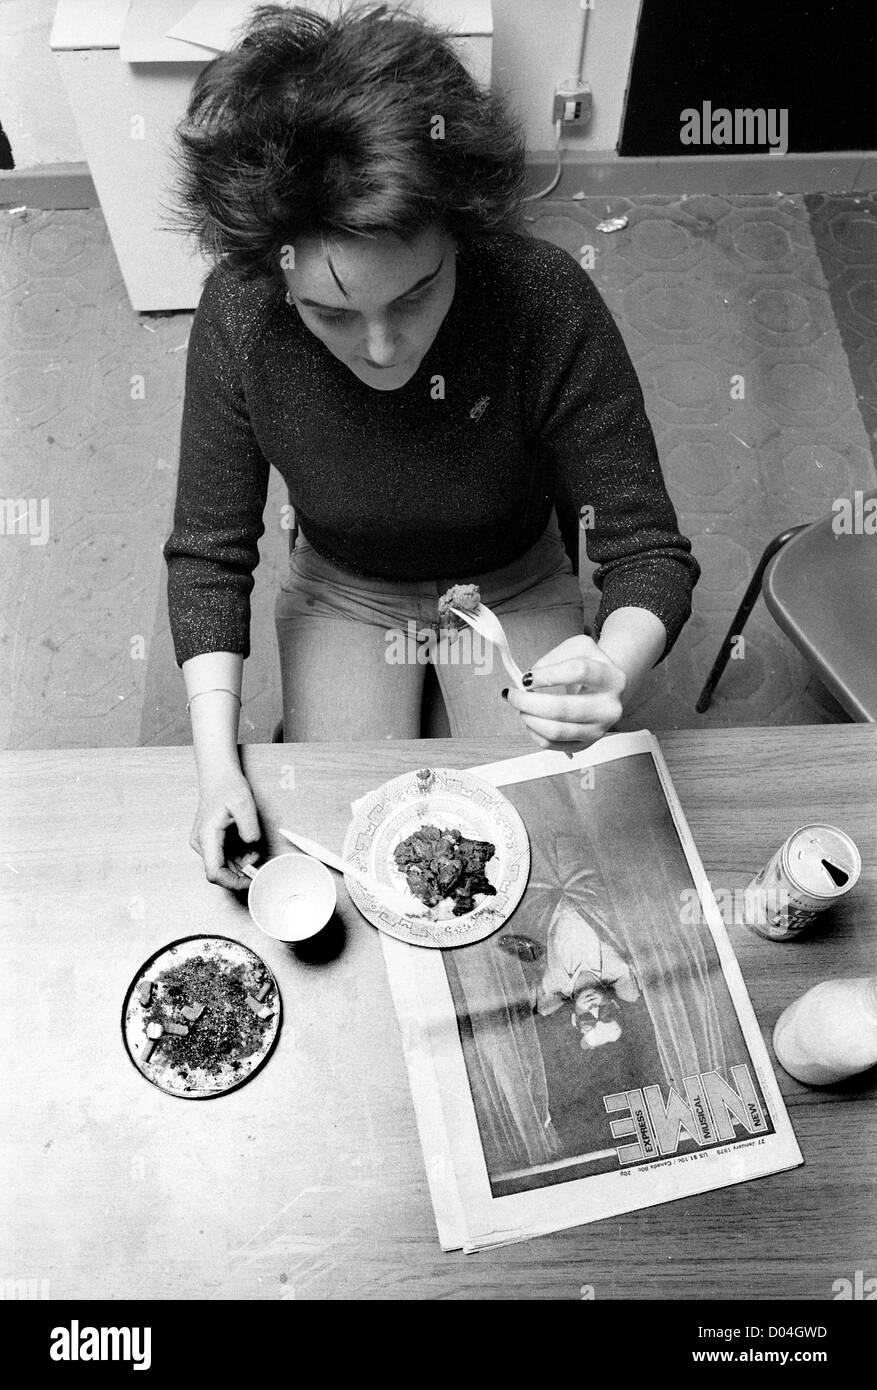 Teenage girl reading the NME while eating lunch 27/1/79 PICTURE BY DAVID BAGNALL - Stock Image